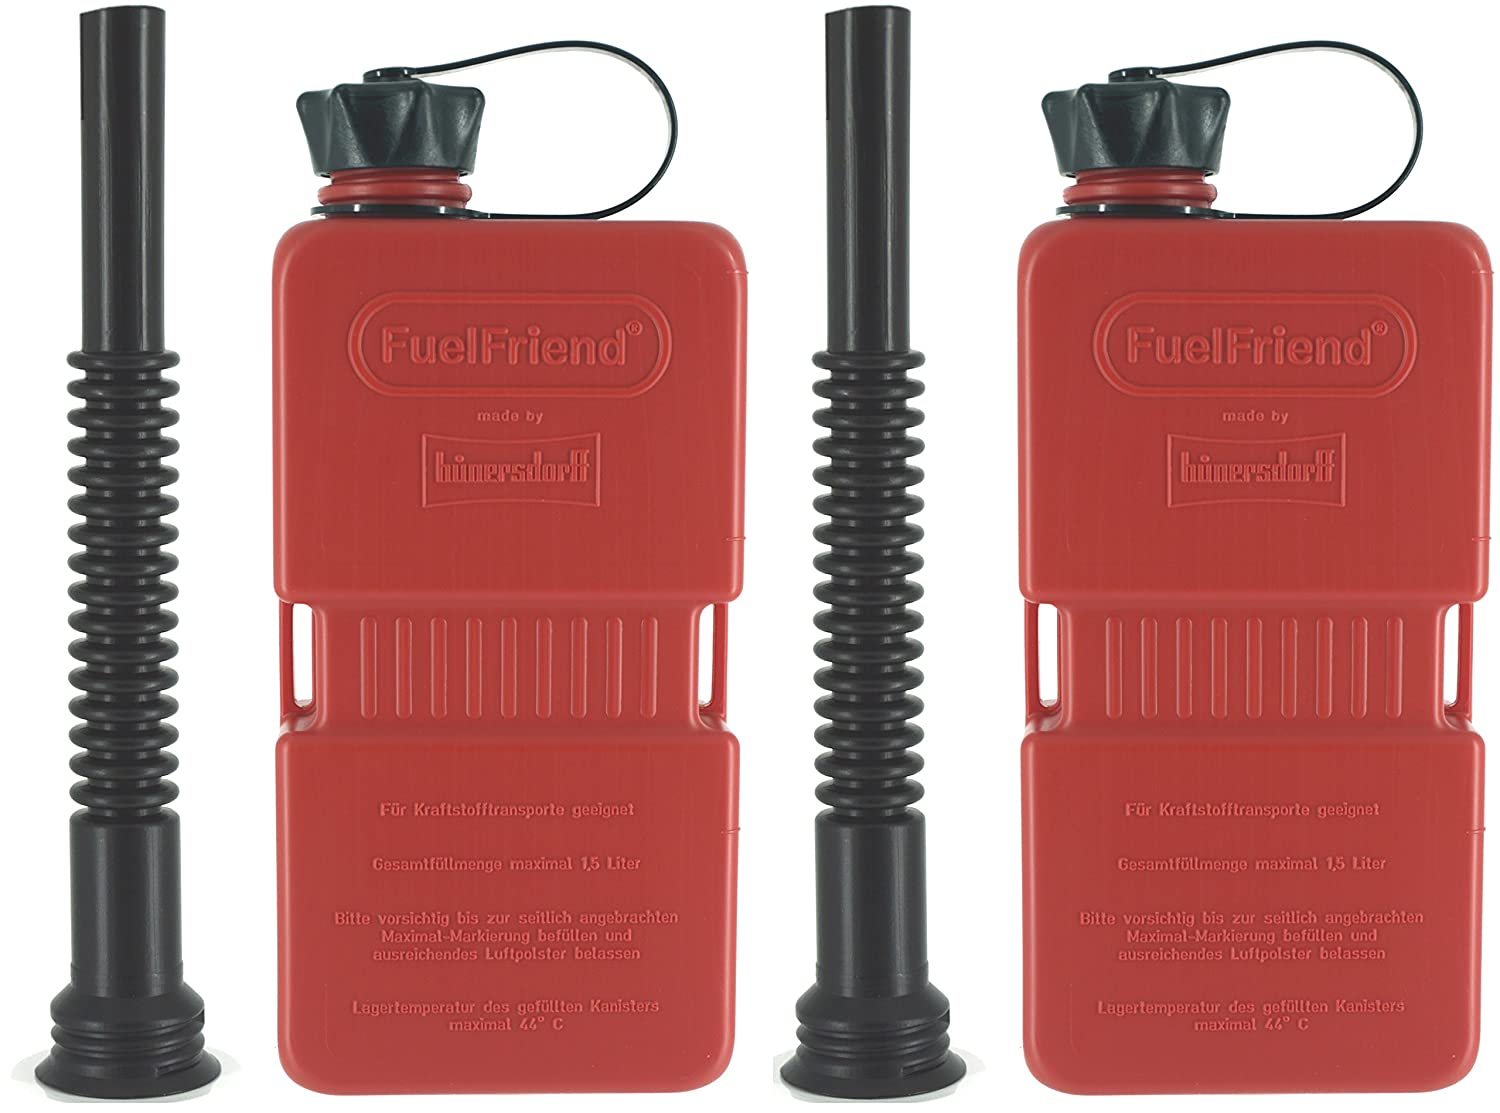 FuelFriend® -PLUS - Jerrycan 1.5 liters + spout flexible - 2 pieces for a special price hünersdorff 2FFP15FR